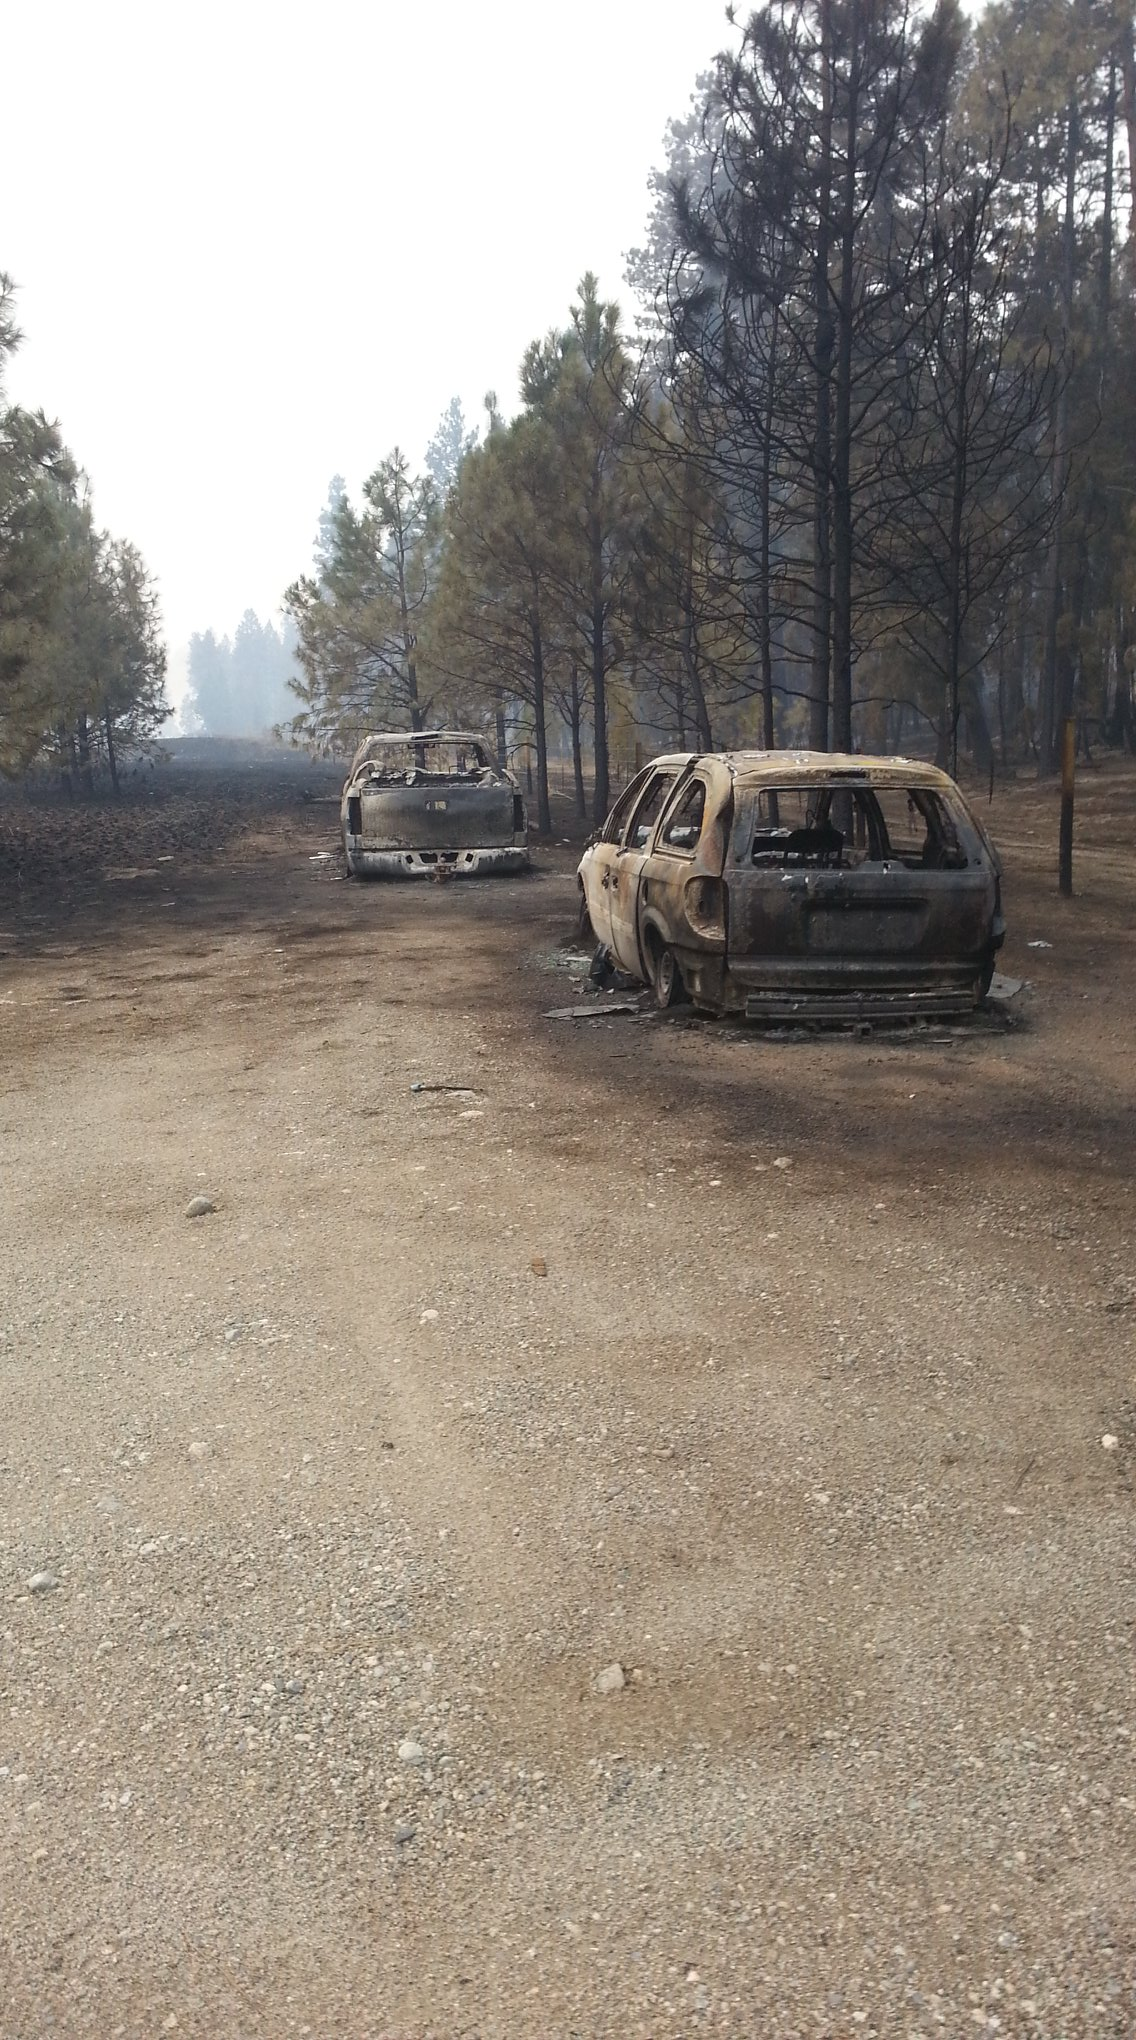 Image: Darrin Metcalf via Rock Creek Fire and Evacuee Information Group / Facebook